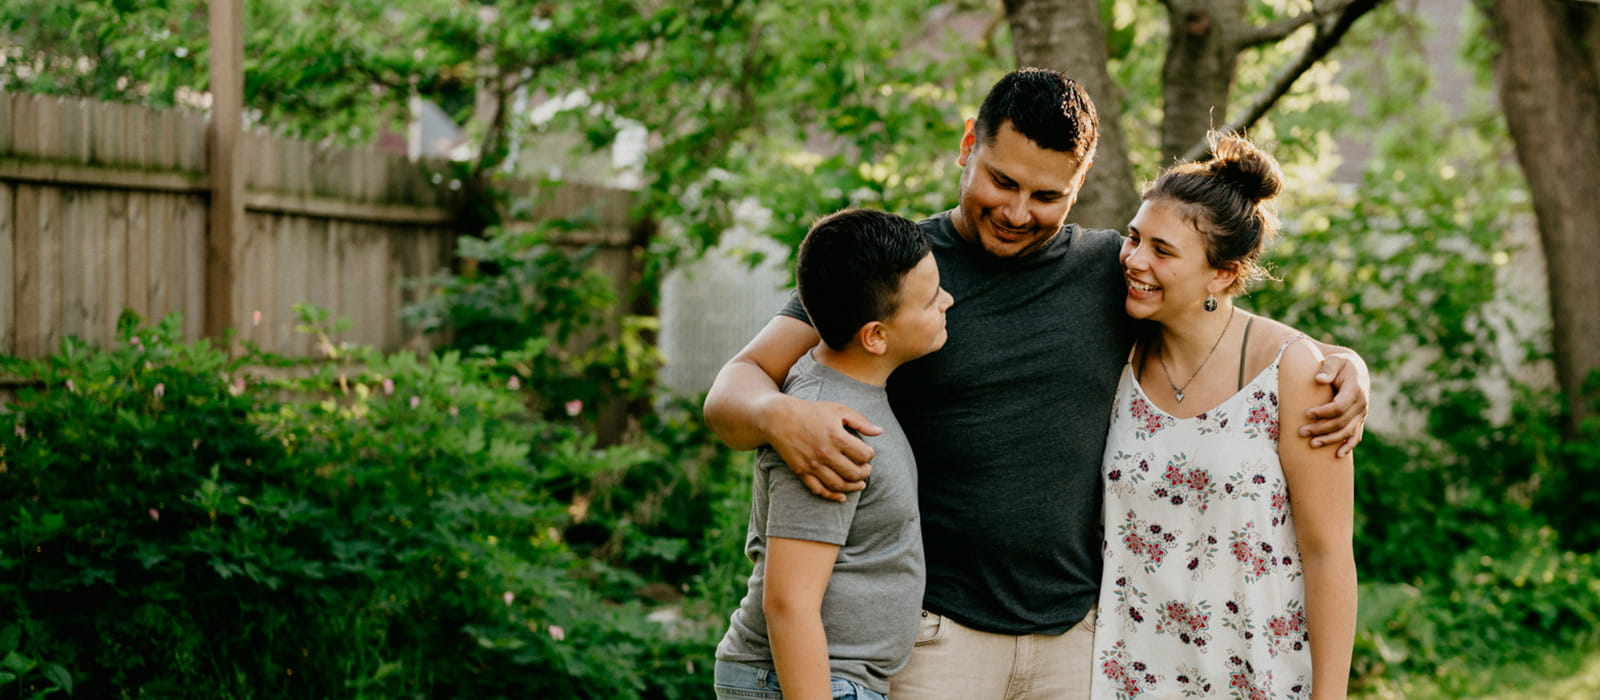 Family standing in yard smiling at each other.